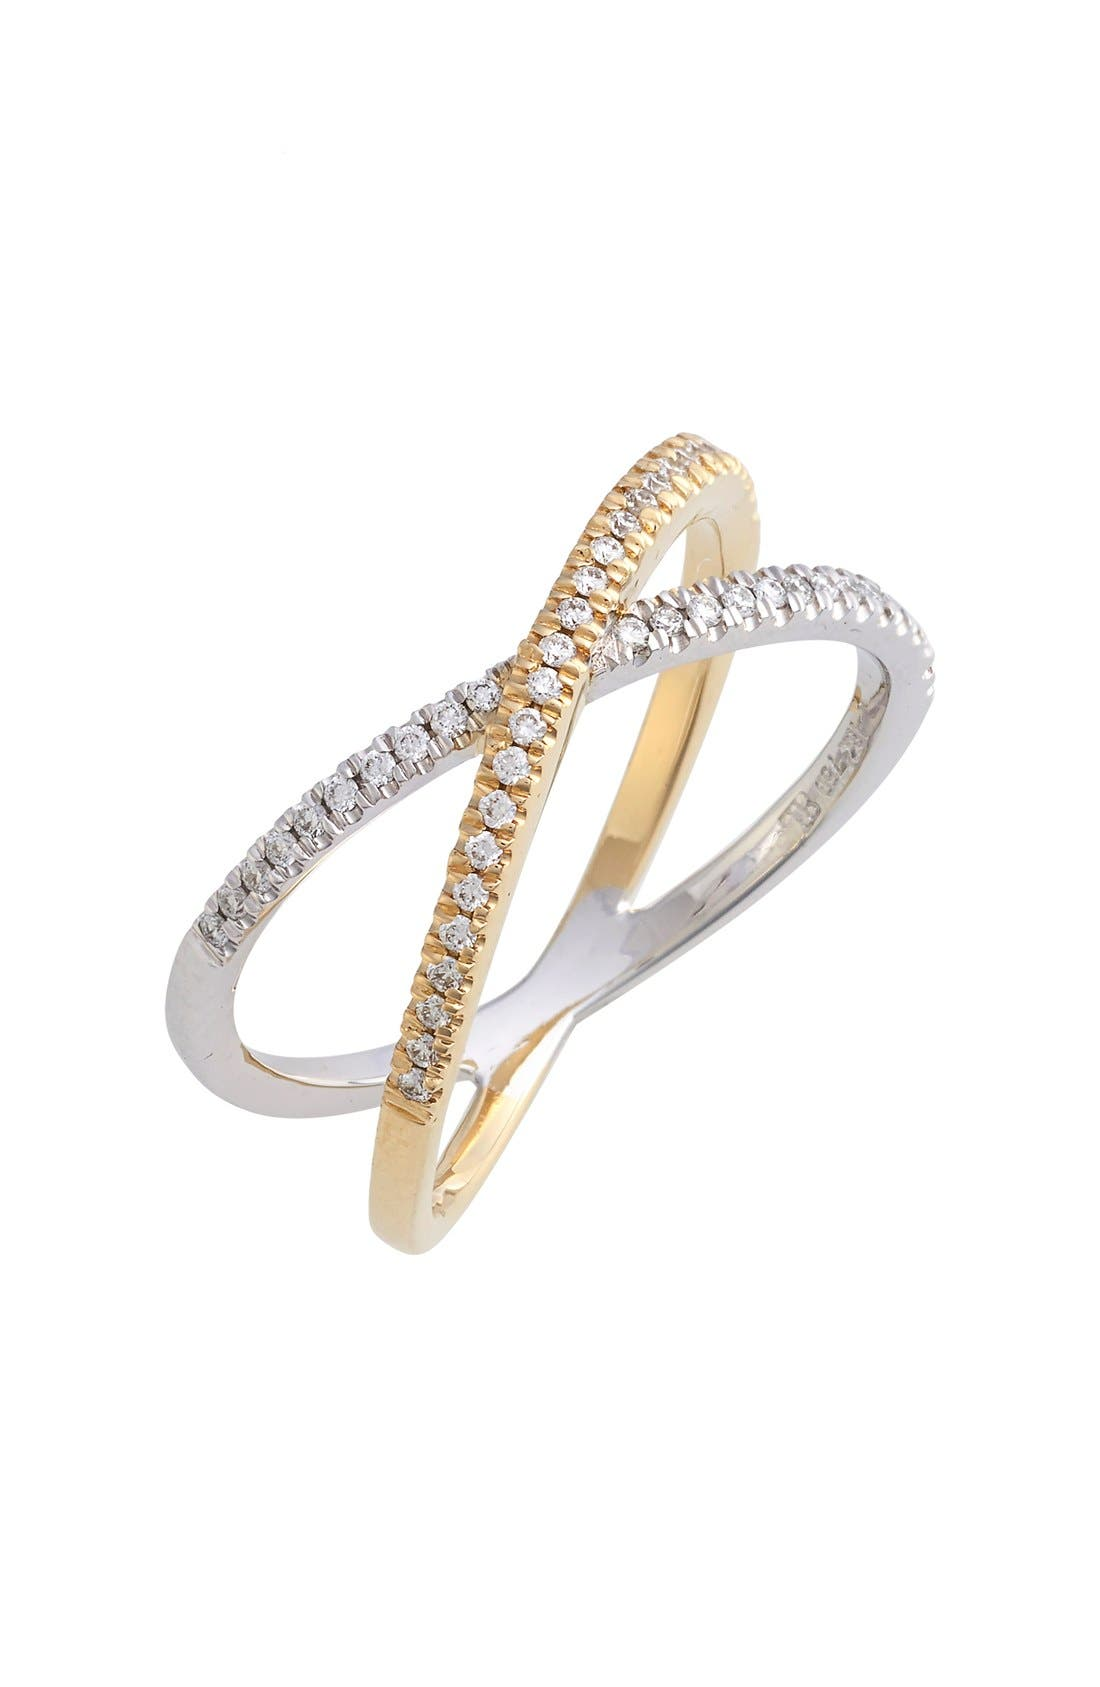 Stackable Crossover Diamond Ring,                             Main thumbnail 1, color,                             WHITE GOLD/ YELLOW GOLD